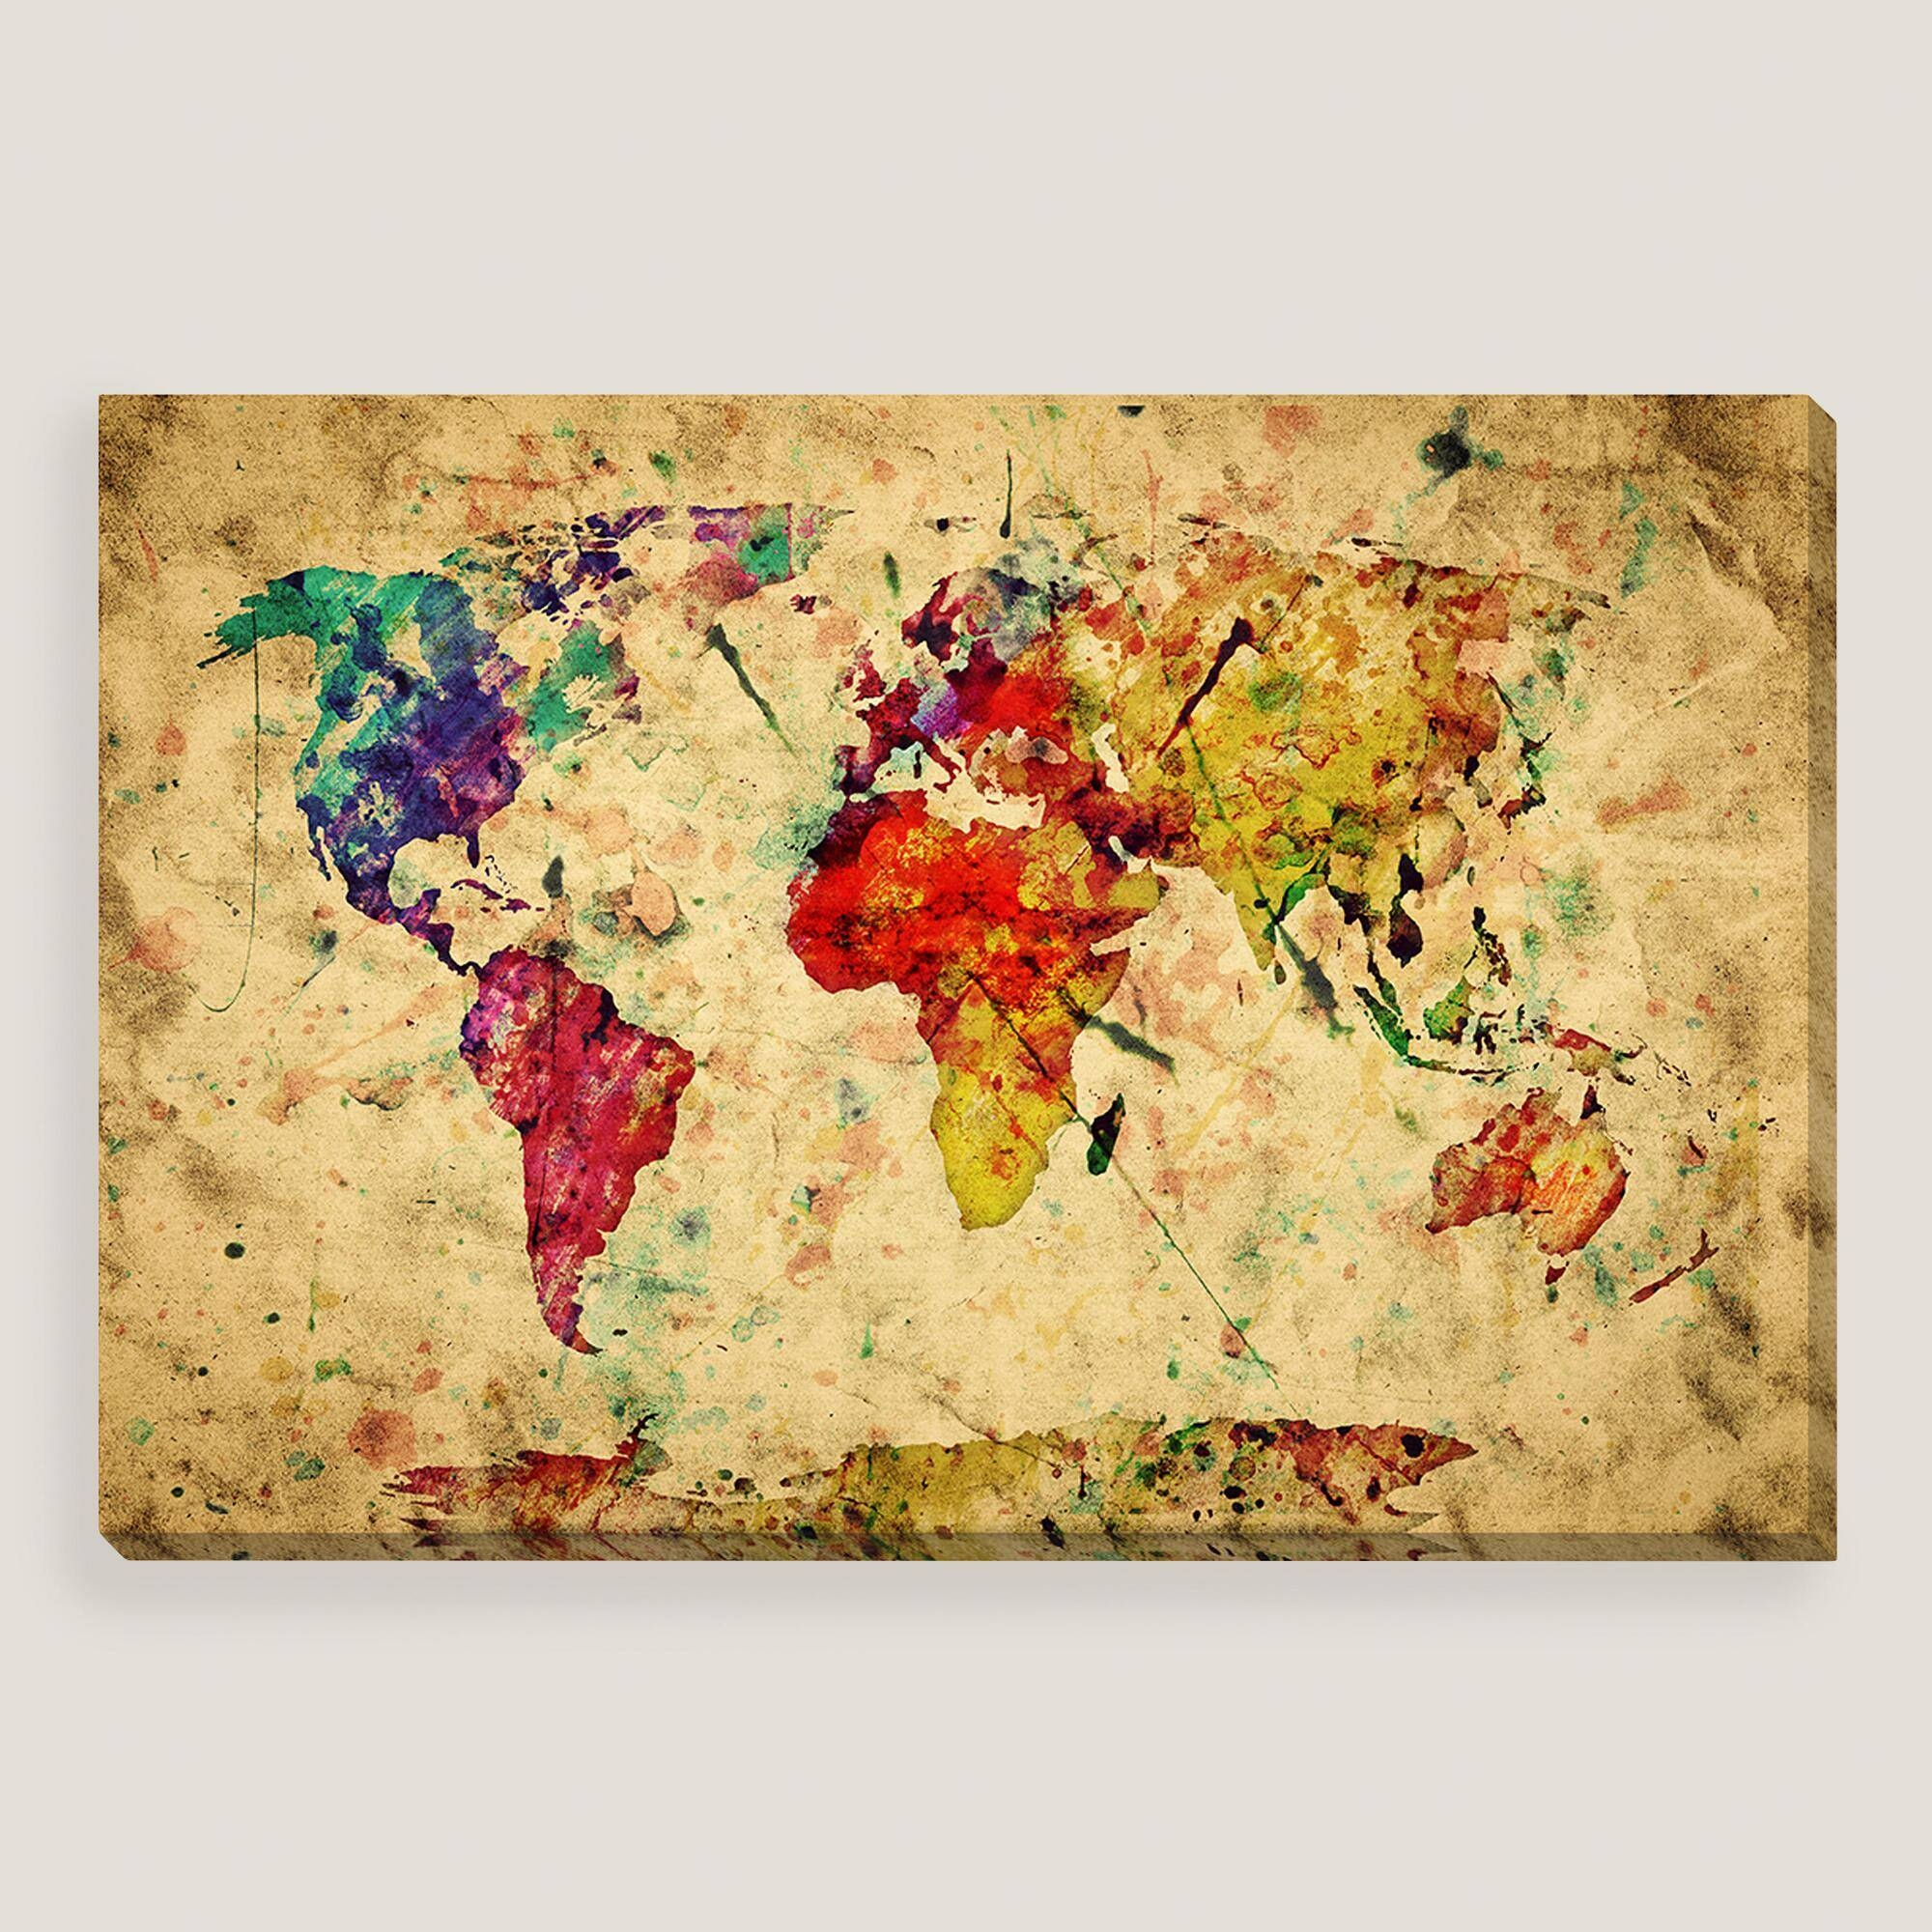 Wall Art Design Ideas: Modern Painting Vintage World Map Wall Art In Most Popular Maps For Wall Art (View 15 of 20)